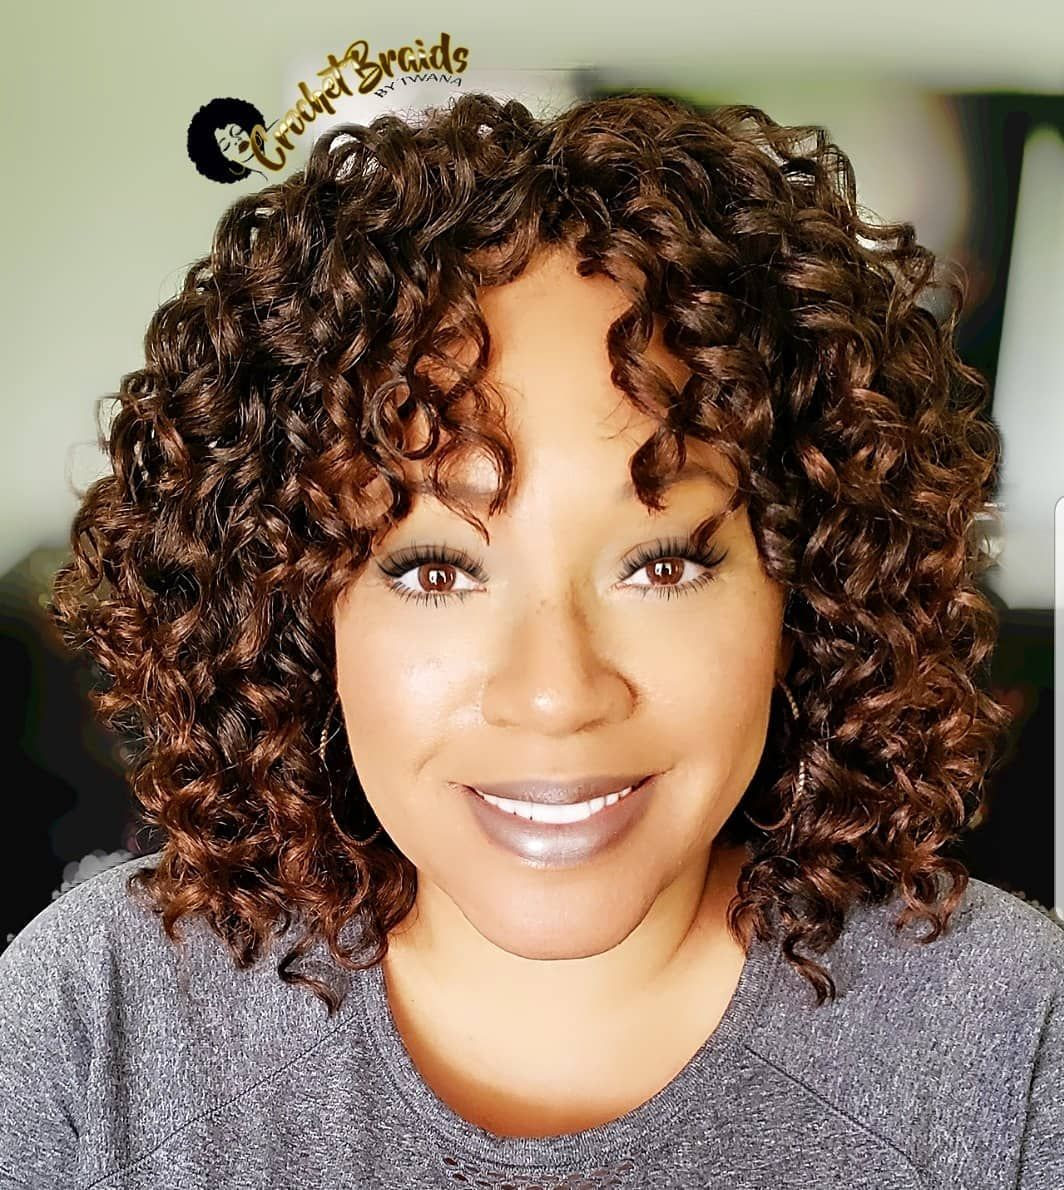 "Crochet Braids By Twana on Instagram: ""Crochet Braids featuring 10 Sassy Curl from the Afri Naptural 2x Caribbean Collection. Color 1B/30. 2 packs used. This hair is a great…"" #crochetbraids"